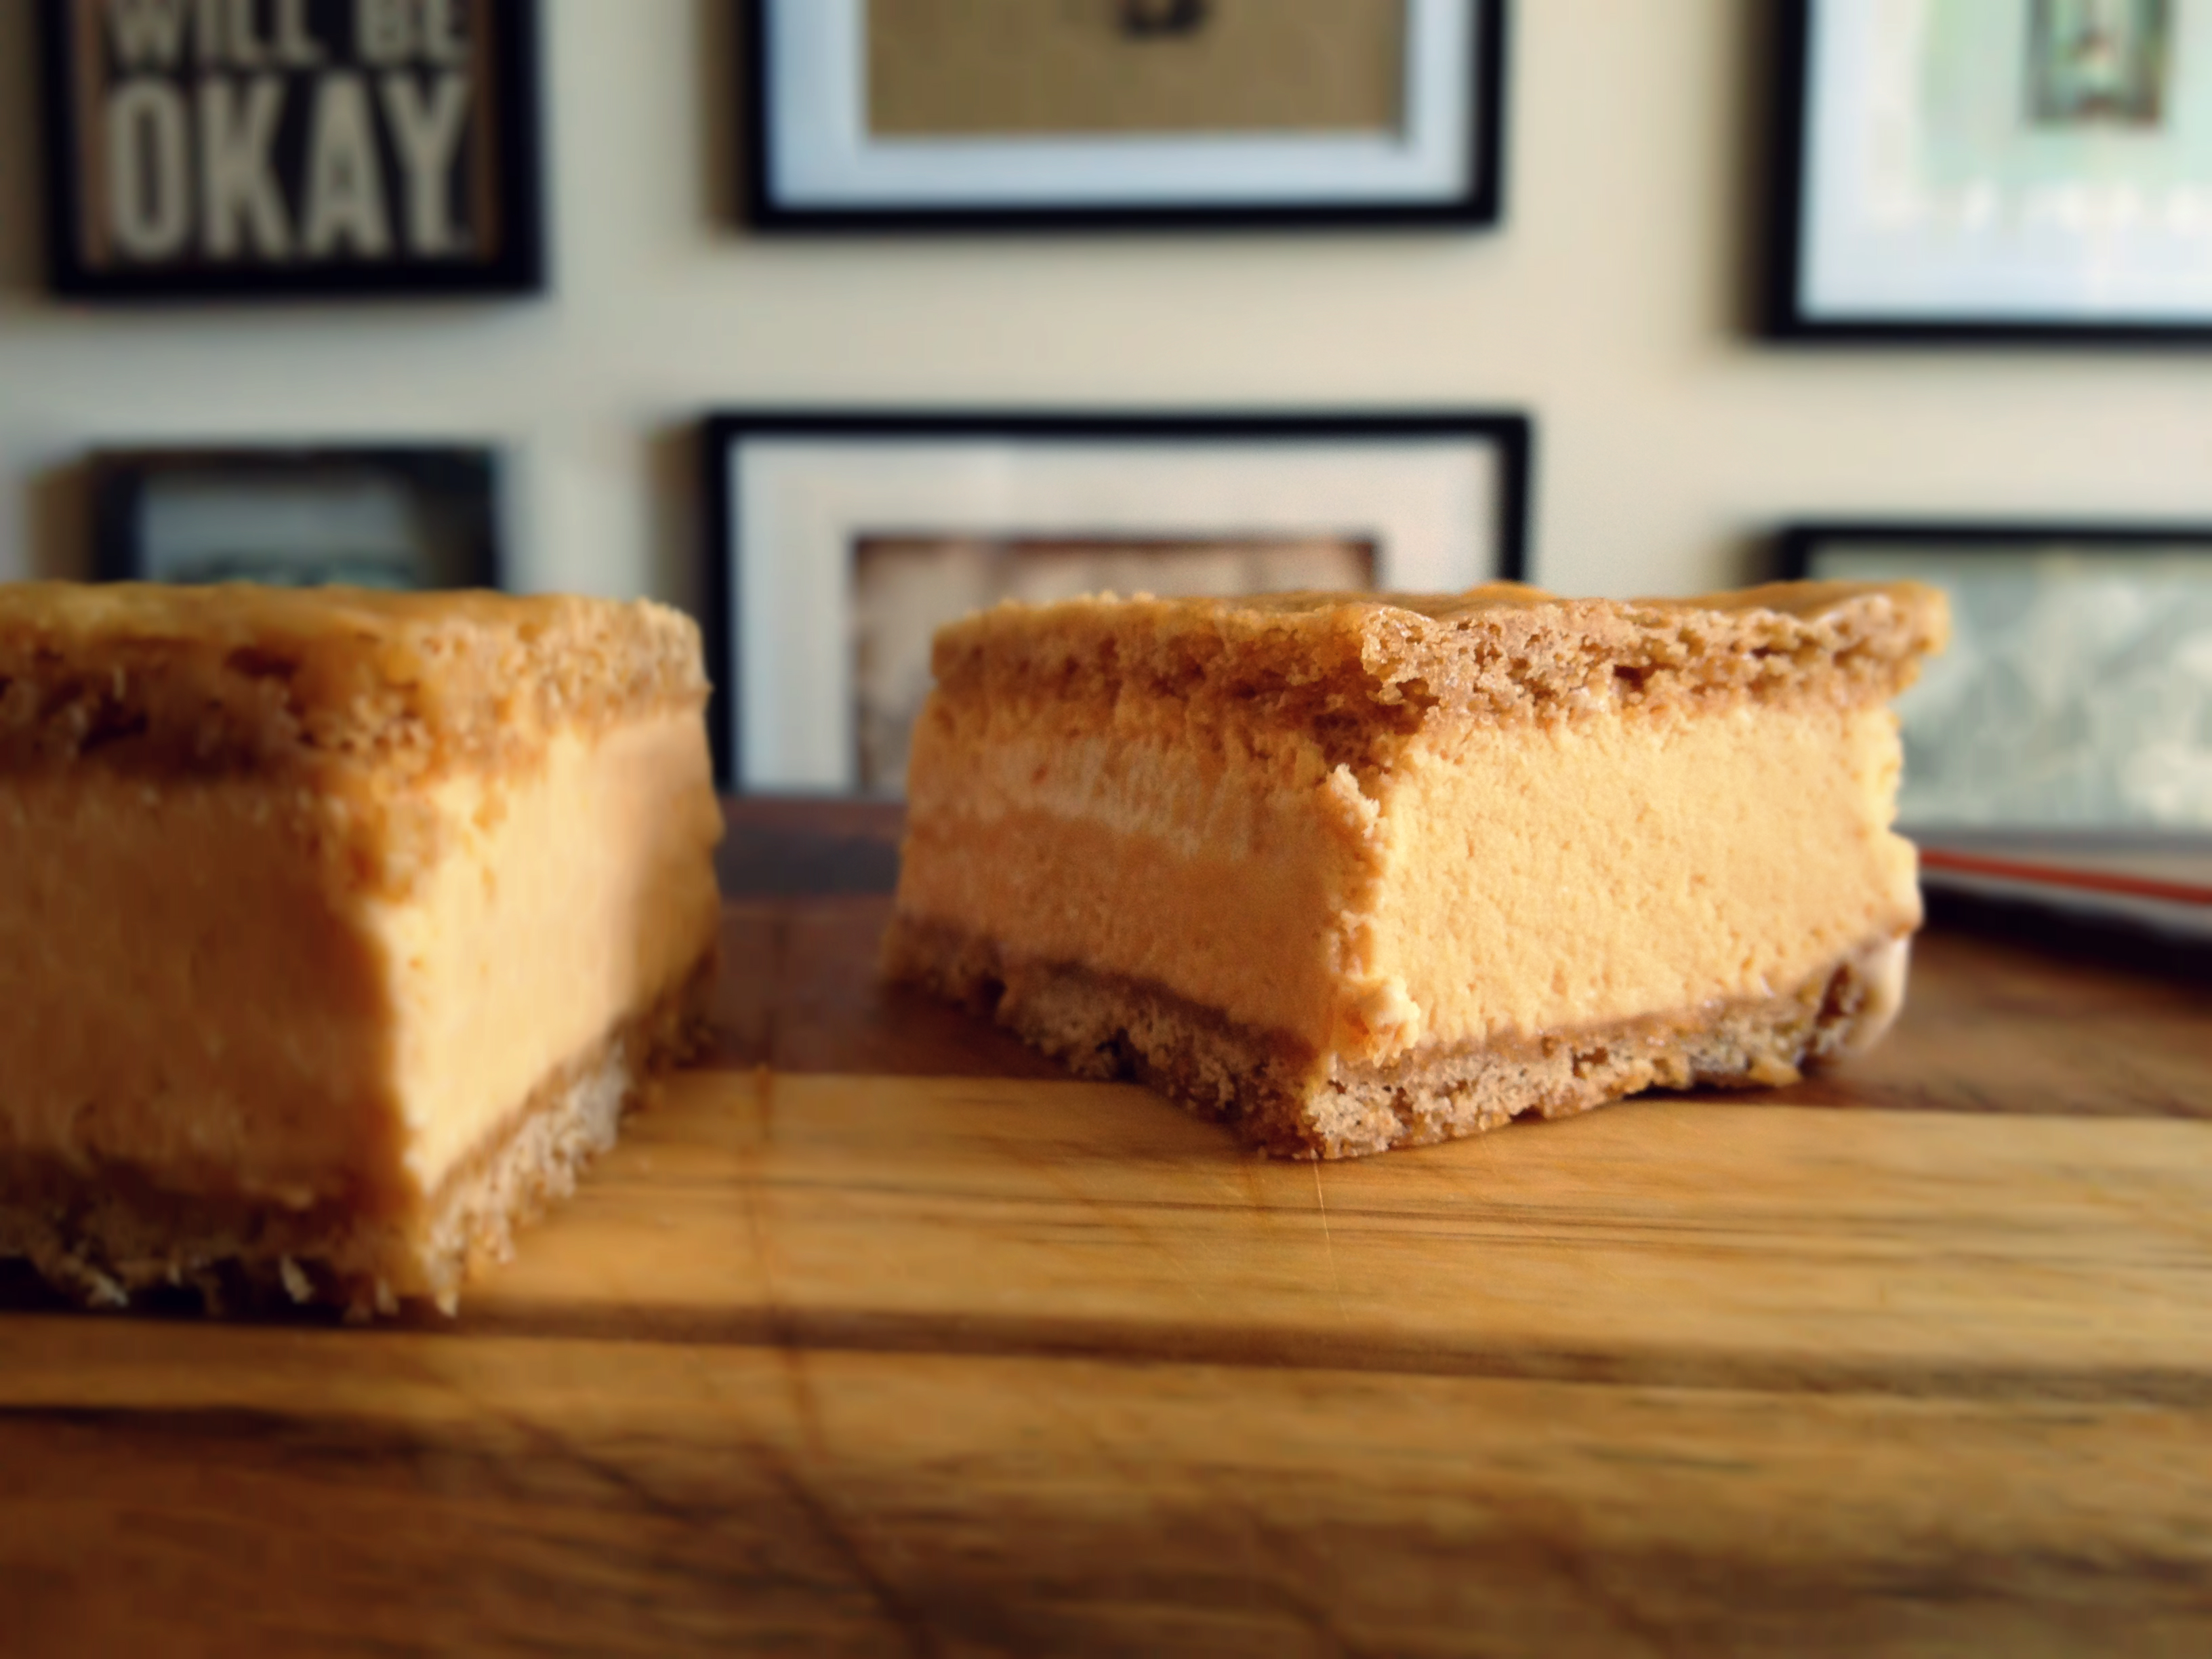 Brown Butter Sea Salt Caramel Ice Cream Sandwiches